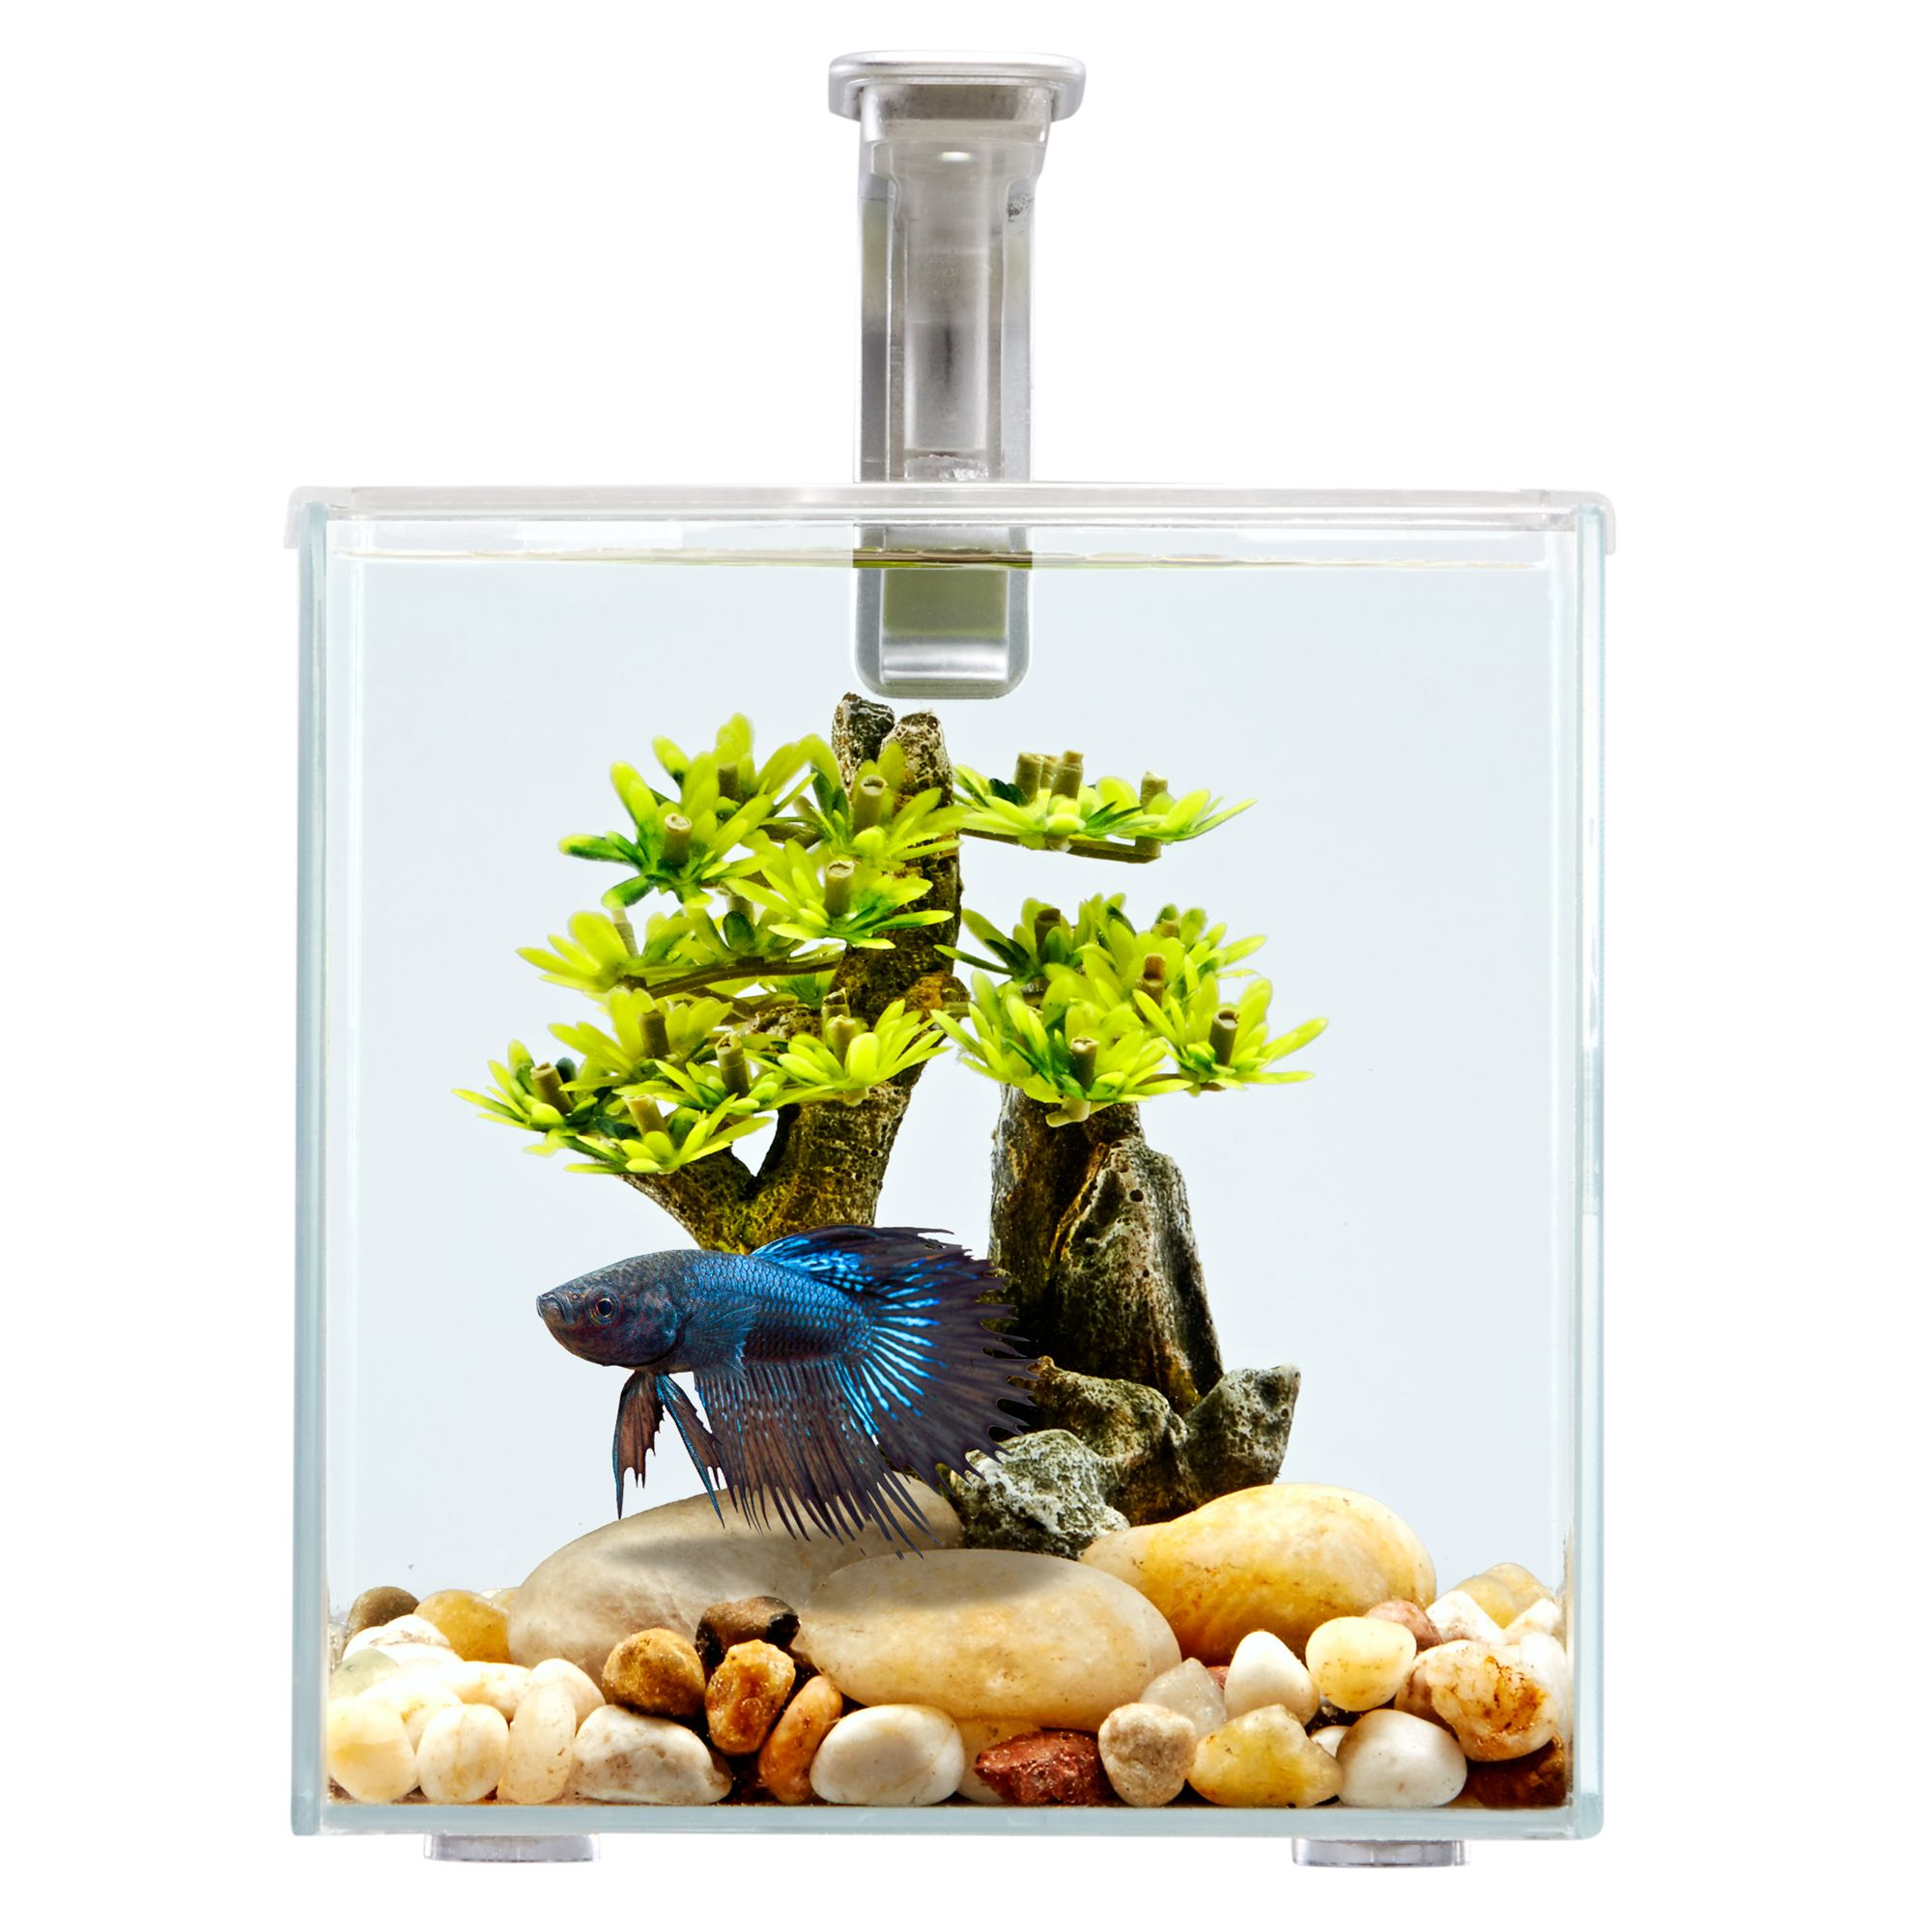 Top fin betta aquarium water conditioner for Betta fish tanks petsmart